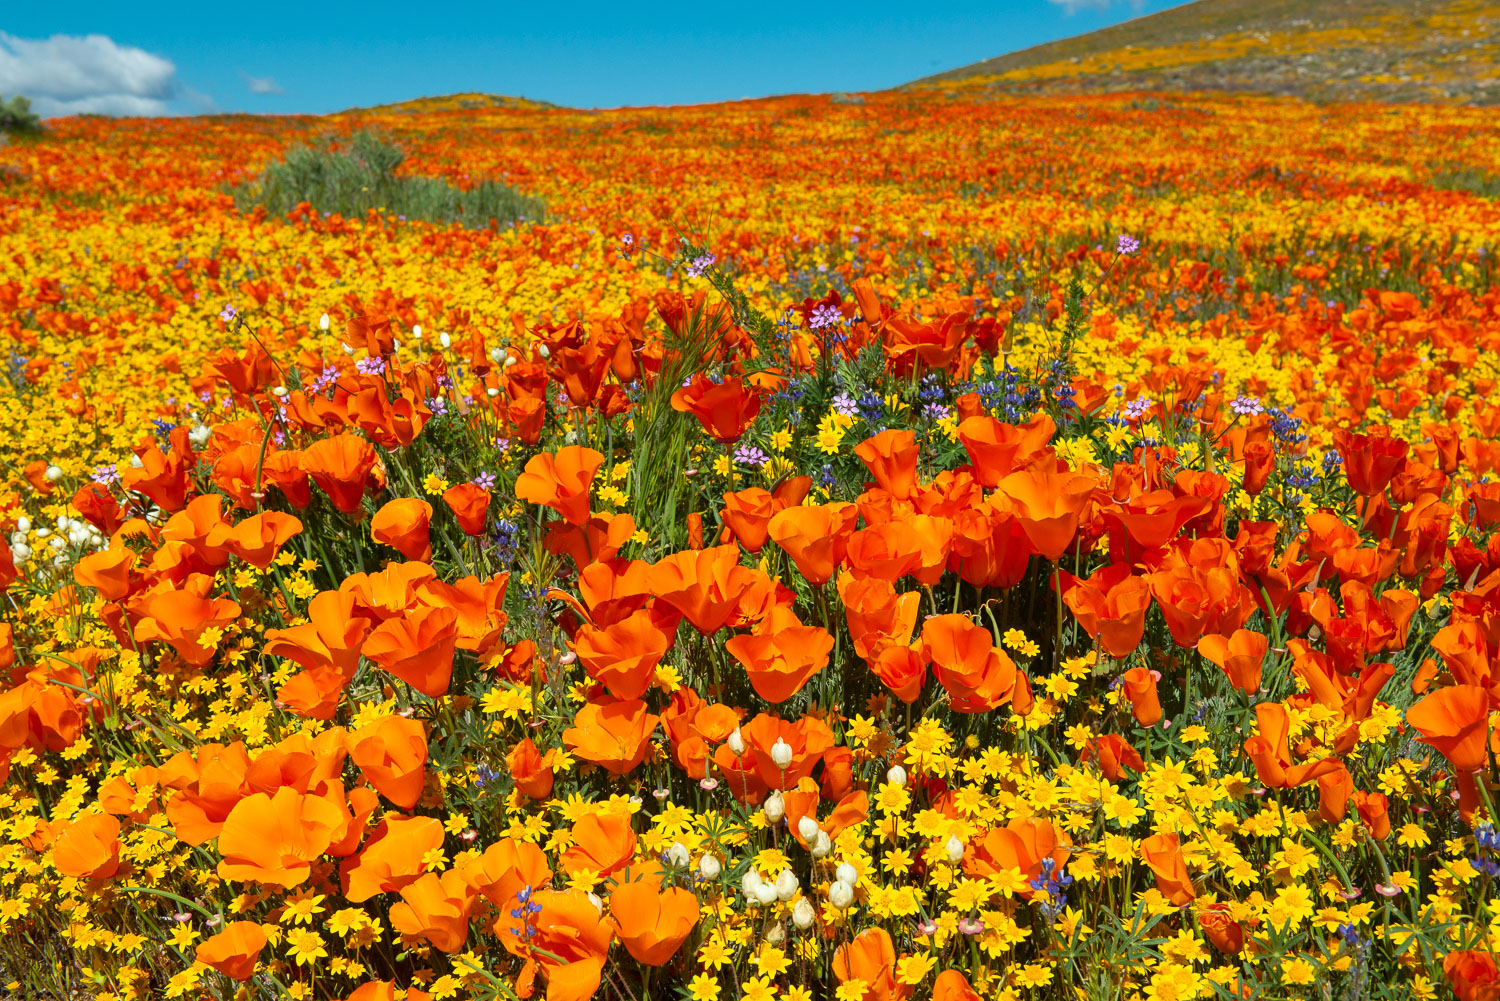 Orange, Yellow, and Purple  Superbloom Wildflowers Fill the fram